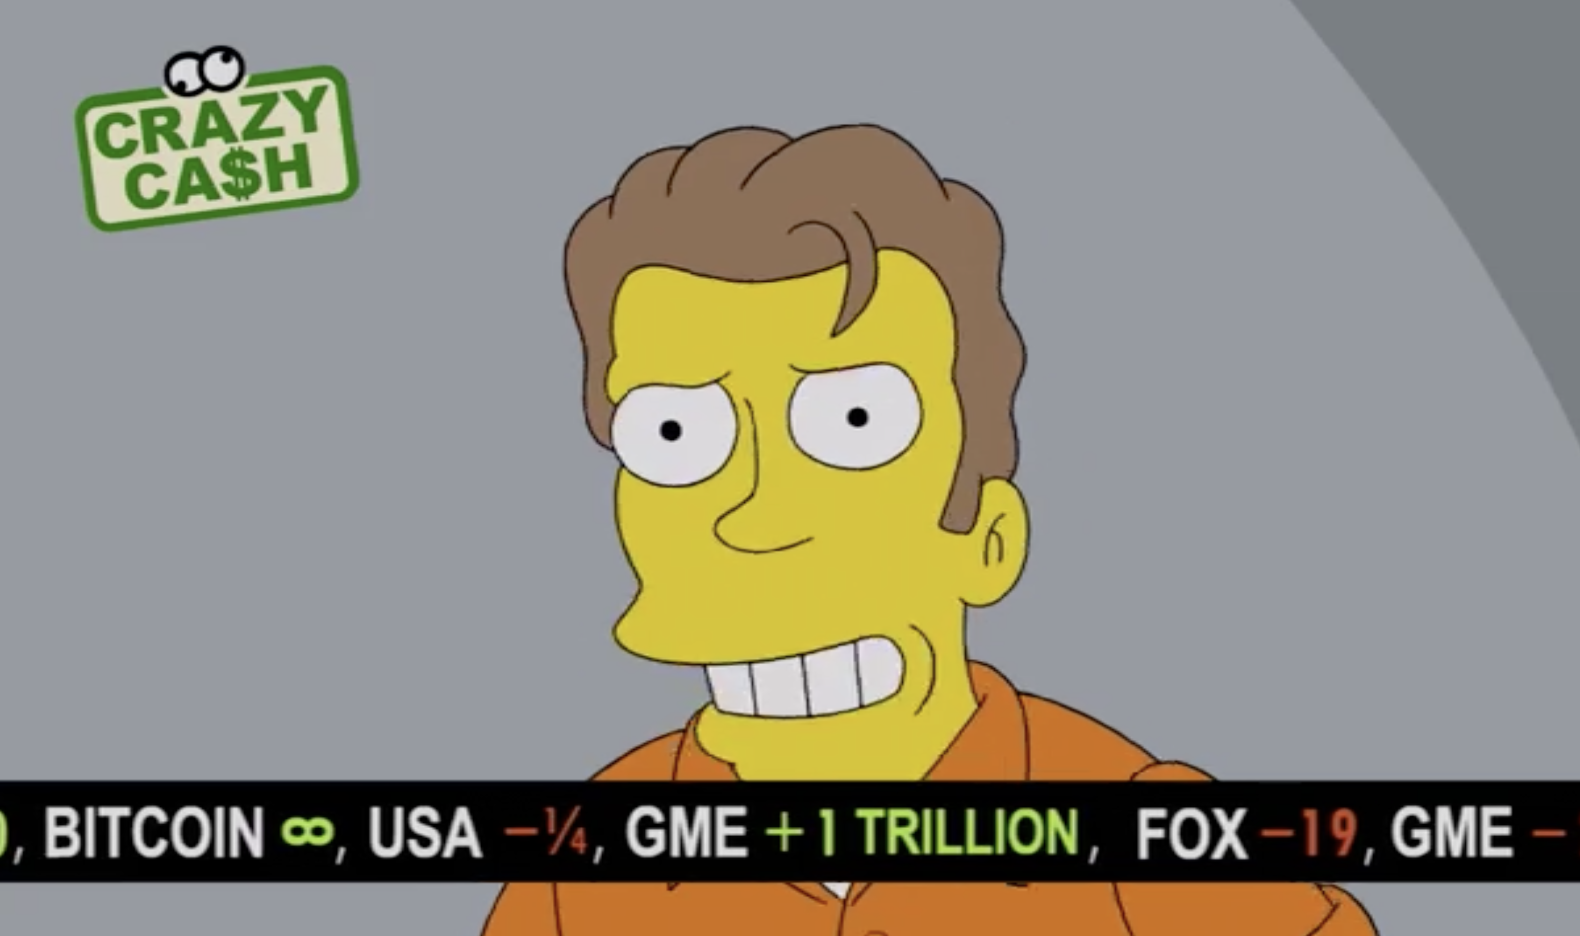 Bitcoin goes yellow as Simpsons episode features BTC price rising to infinity